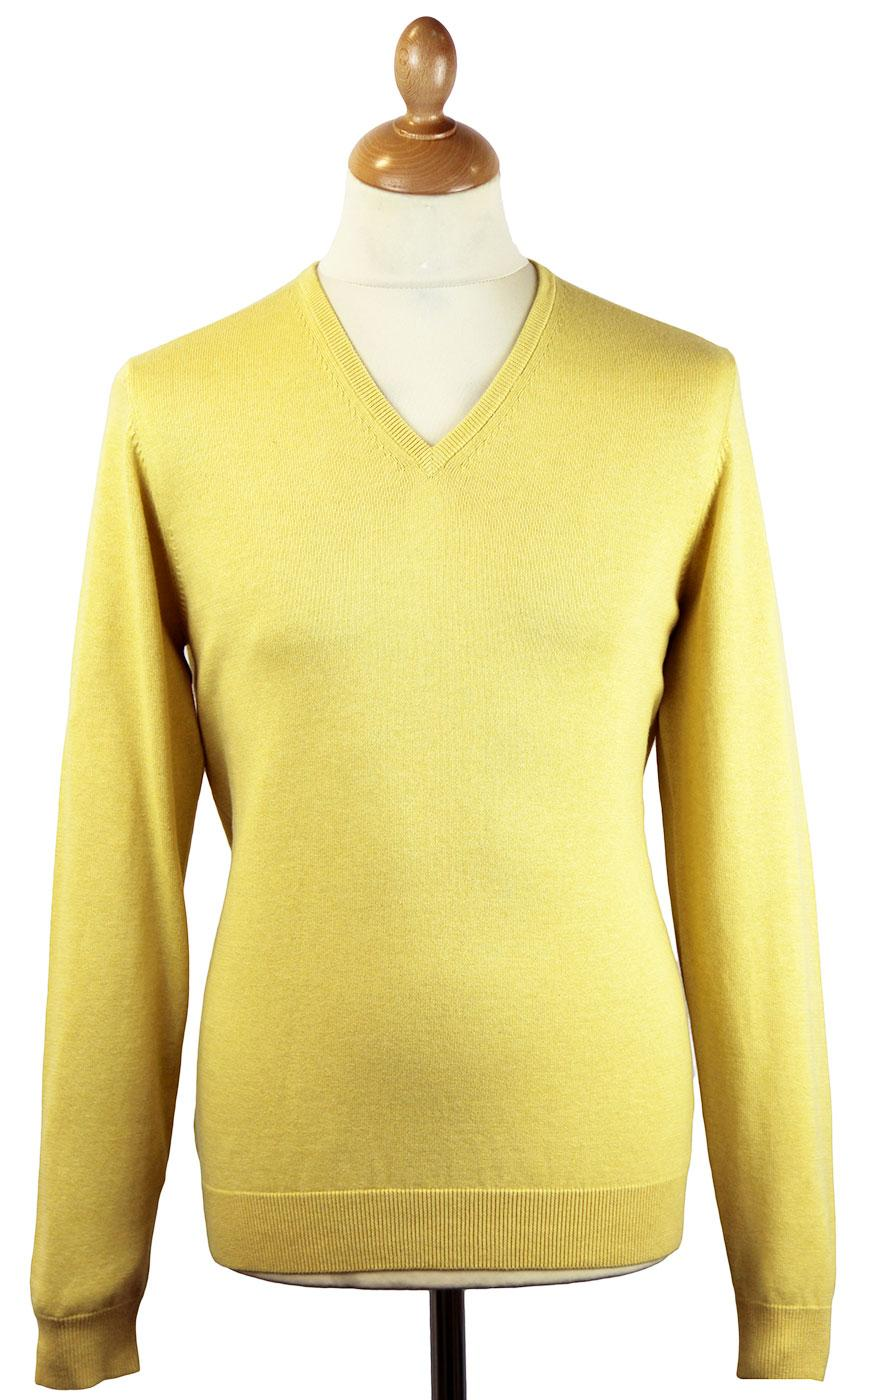 Rothwell ALAN PAINE Luxury Cotton V-Neck Jumper C